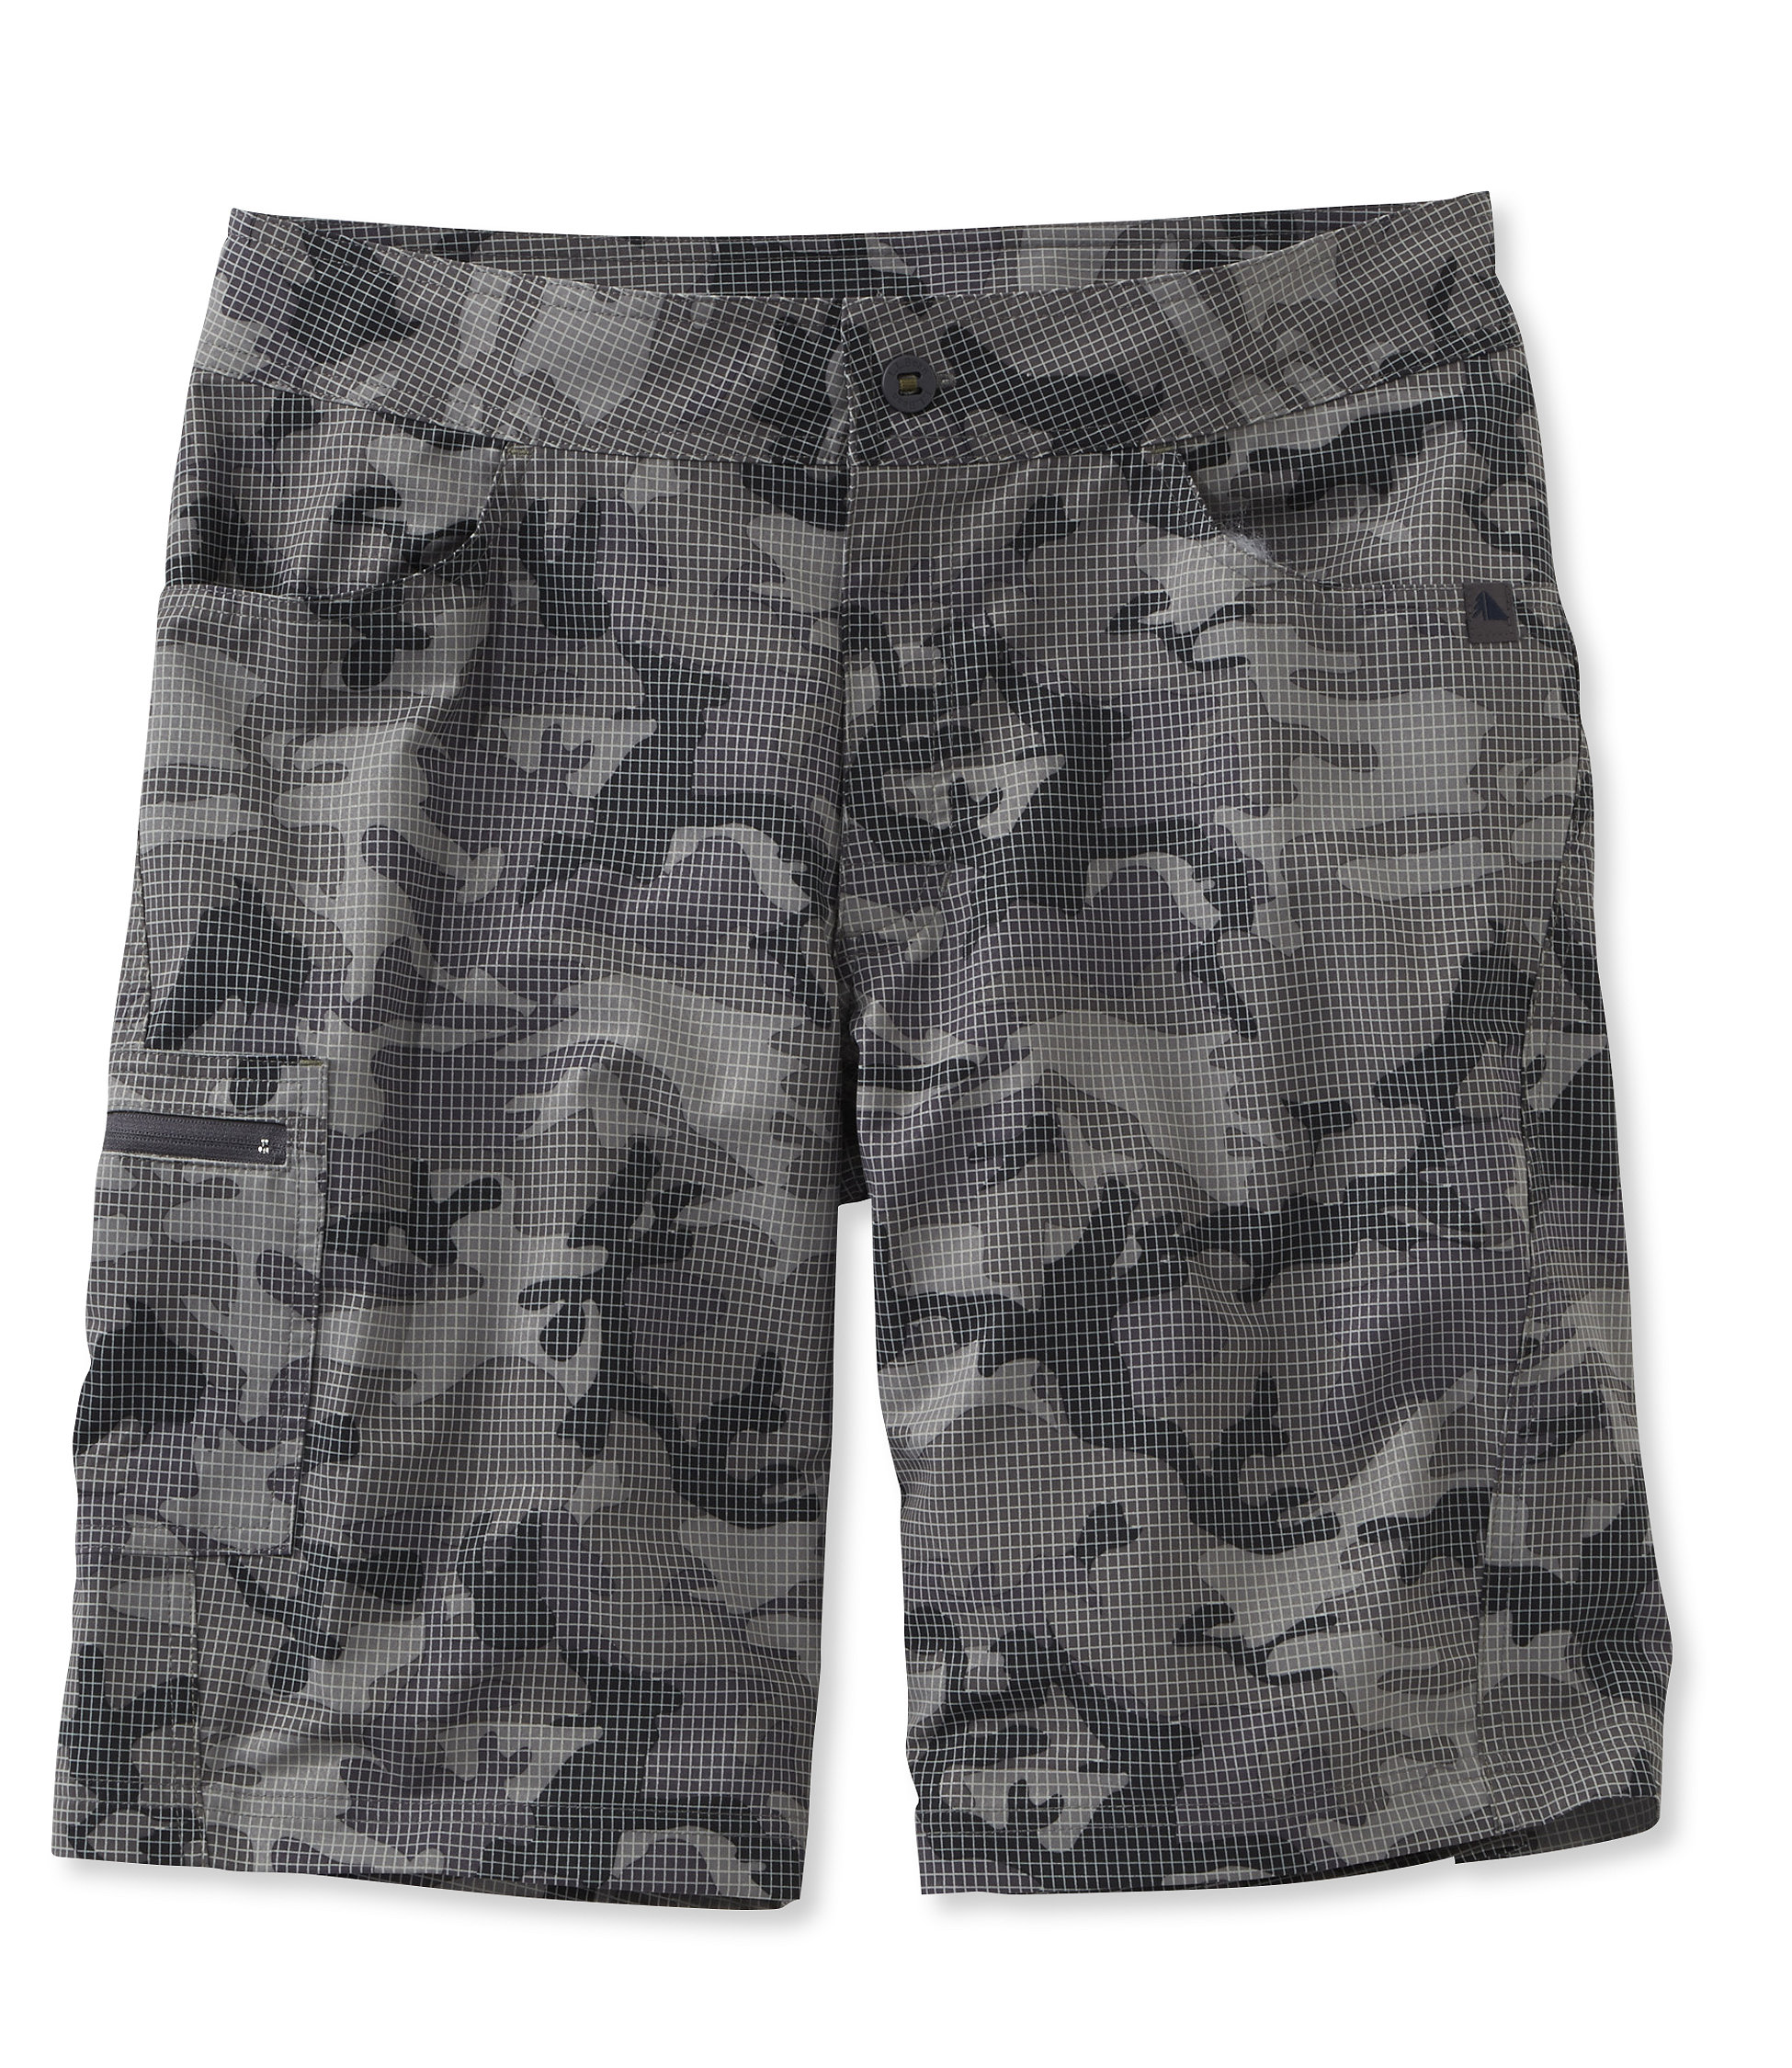 L.L.Bean Approach Hybrid Shorts